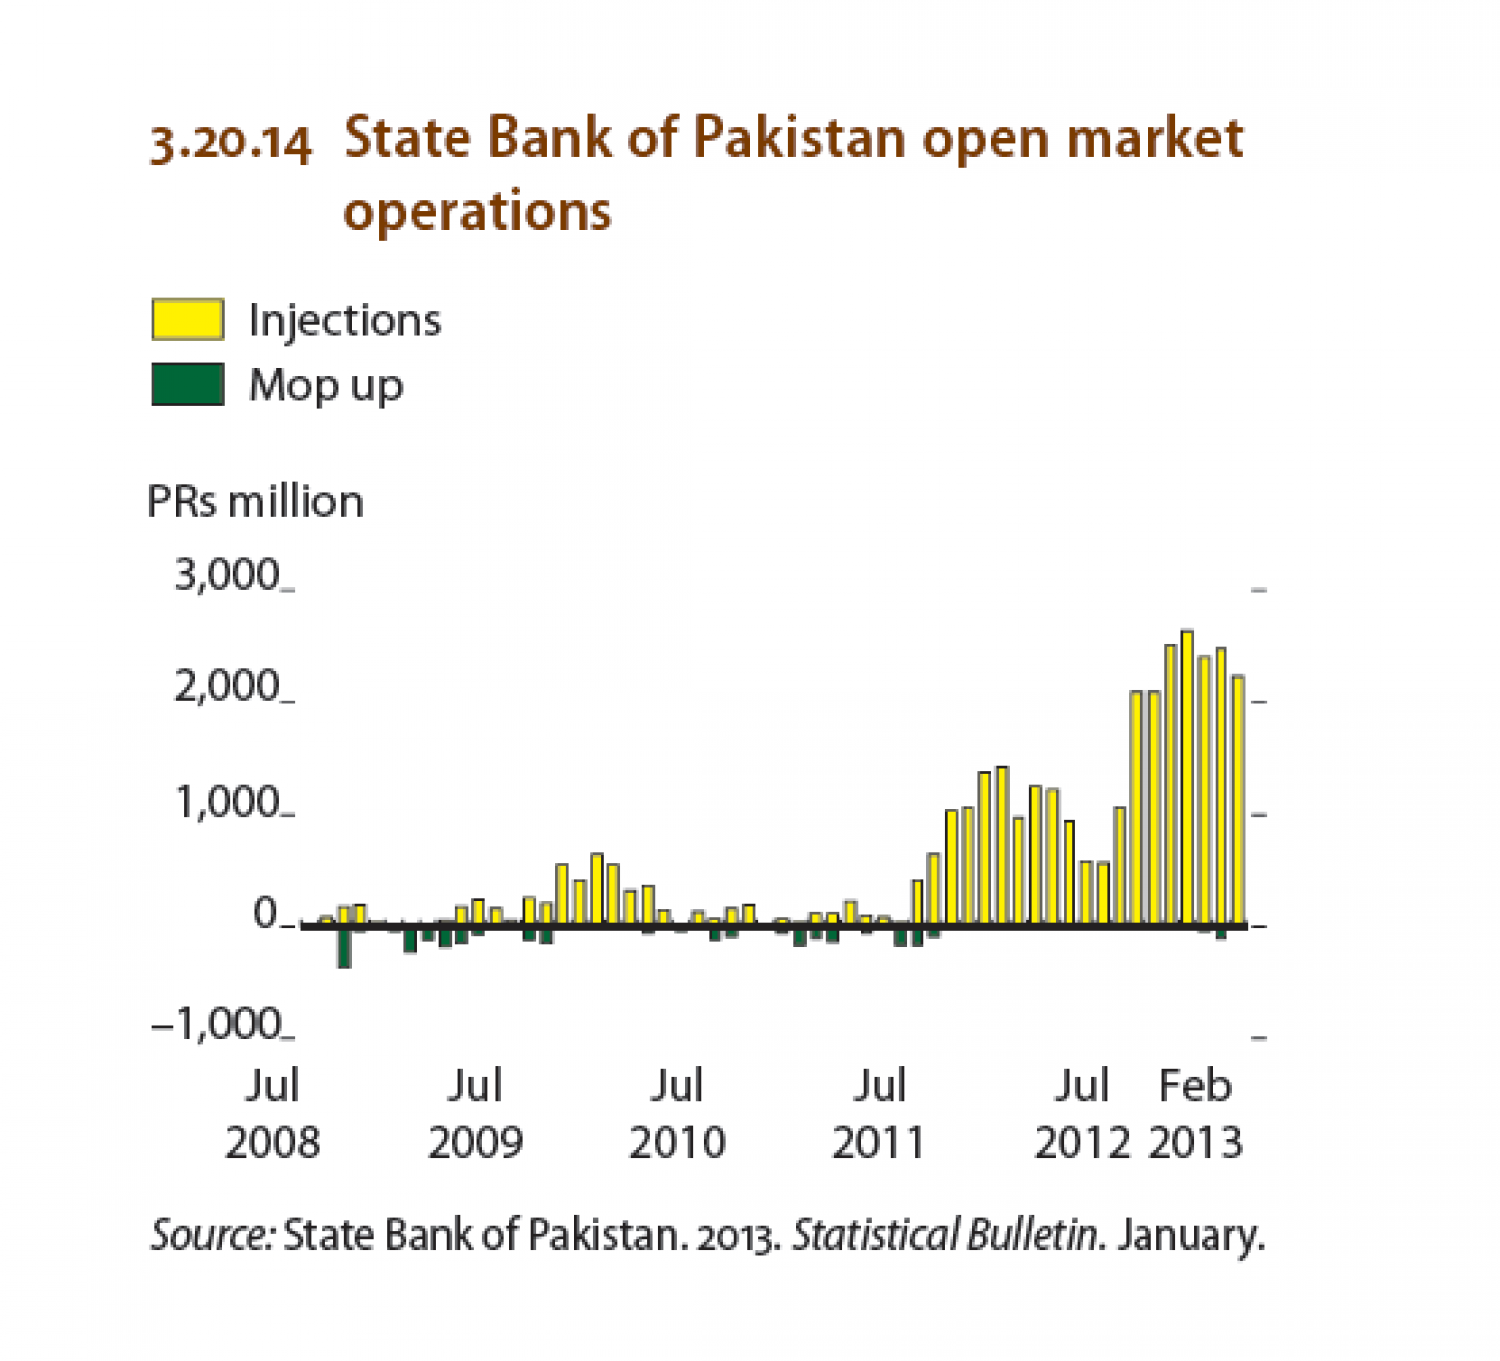 Pakistan - State Bank of Pakistan open market operations Infographic